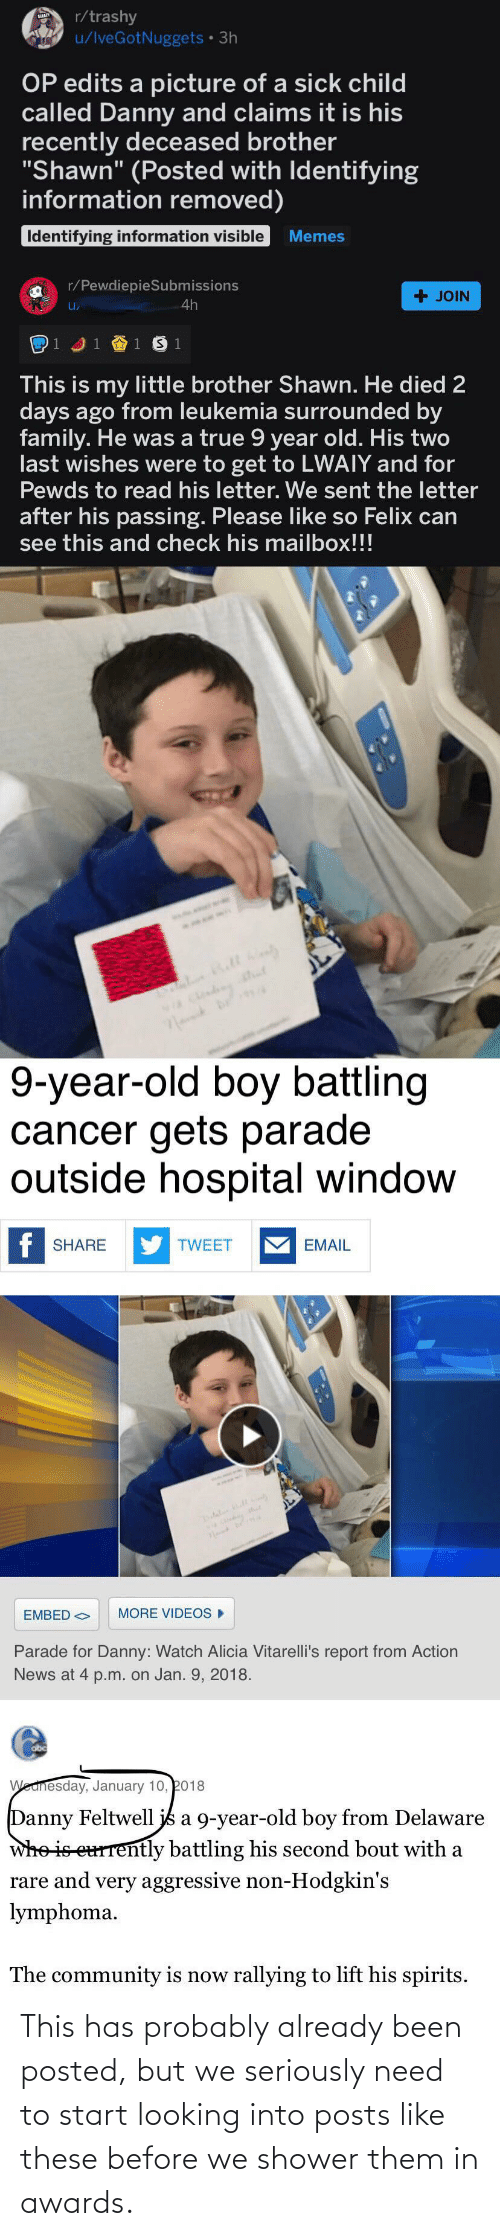 """Community, Family, and Memes: r/trashy  u/IveGotNuggets • 3h  OP edits a picture of a sick child  called Danny and claims it is his  recently deceased brother  """"Shawn"""" (Posted with Identifying  information removed)  Identifying information visible  Memes  r/PewdiepieSubmissions  + JOIN  4h  1 J1 1 S 1  This is my little brother Shawn. He died 2  days ago from leukemia surrounded by  family. He was a true 9 year old. His two  last wishes were to get to LWAIY and for  Pewds to read his letter. We sent the letter  after his passing. Please like so Felix can  see this and check his mailbox!!!  9-year-old boy battling  cancer gets parade  outside hospital window  f SHARE  Y TWEET  EMAIL  MORE VIDEOS  EMBED O  Parade for Danny: Watch Alicia Vitarelli's report from Action  News at 4 p.m. on Jan. 9, 2018.  obc  Wednesday, January 10, 2018  Danny Feltwell js a 9-year-old boy from Delaware  whe is eurrently battling his second bout with a  rare and very aggressive non-Hodgkin's  lymphoma.  The community is now rallying to lift his spirits. This has probably already been posted, but we seriously need to start looking into posts like these before we shower them in awards."""